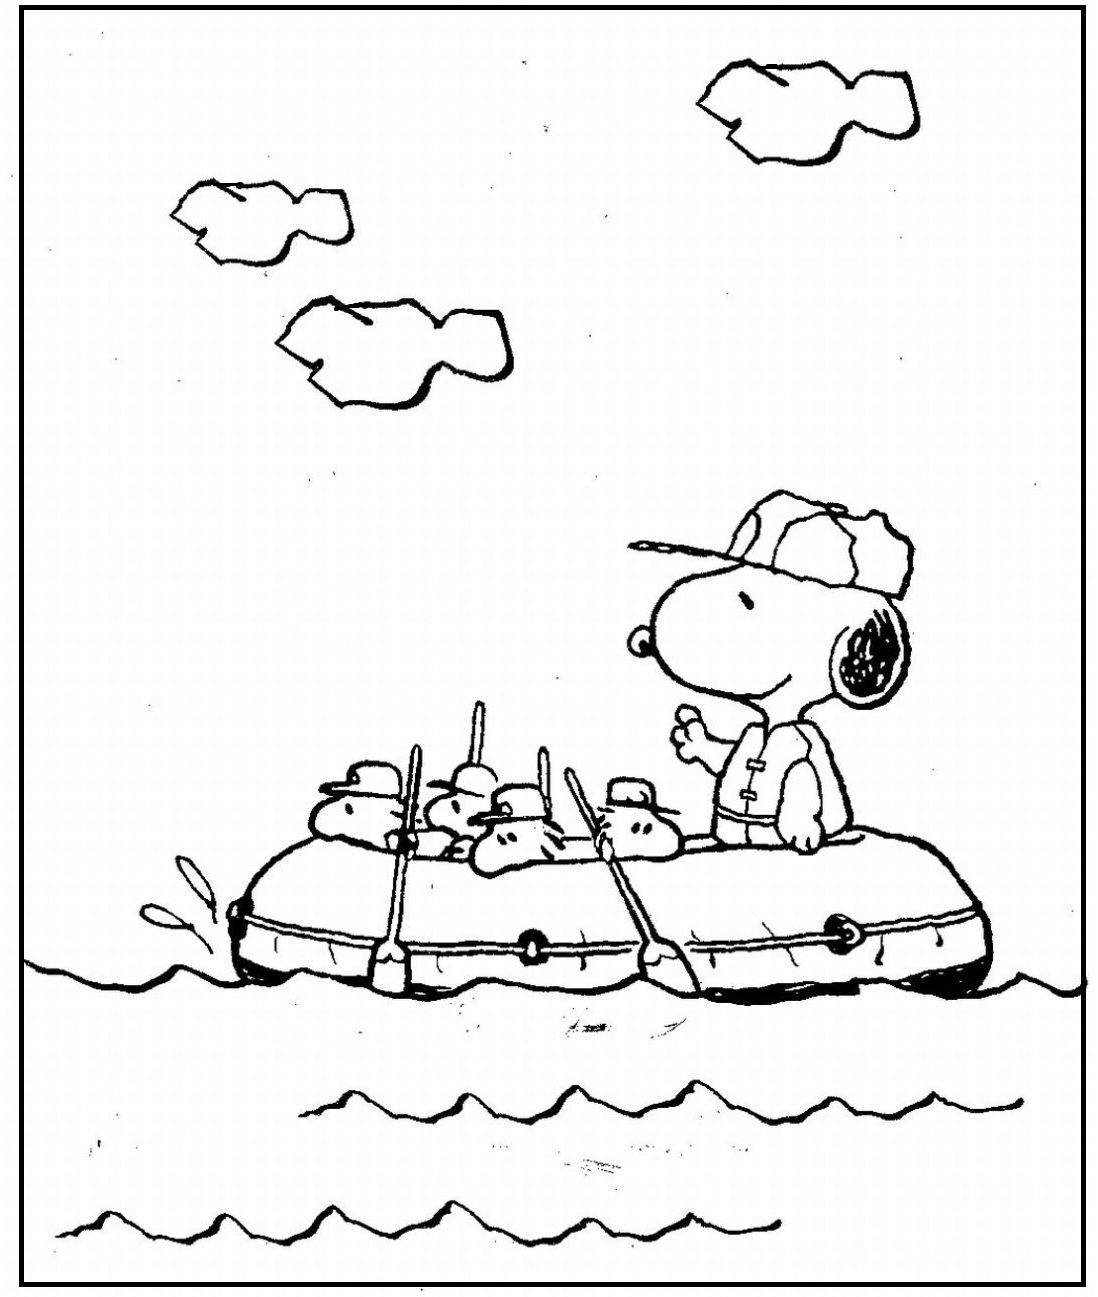 peanuts coloring pages woodstock - photo#22